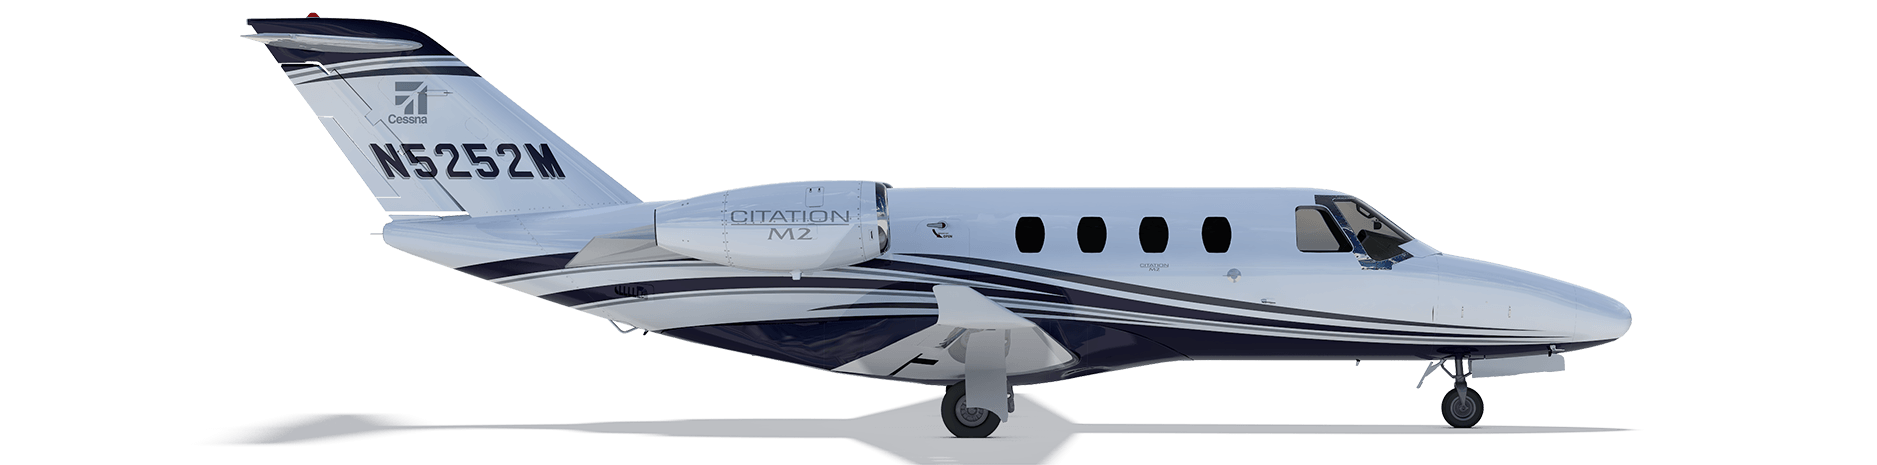 Cessna-Citation-525-5